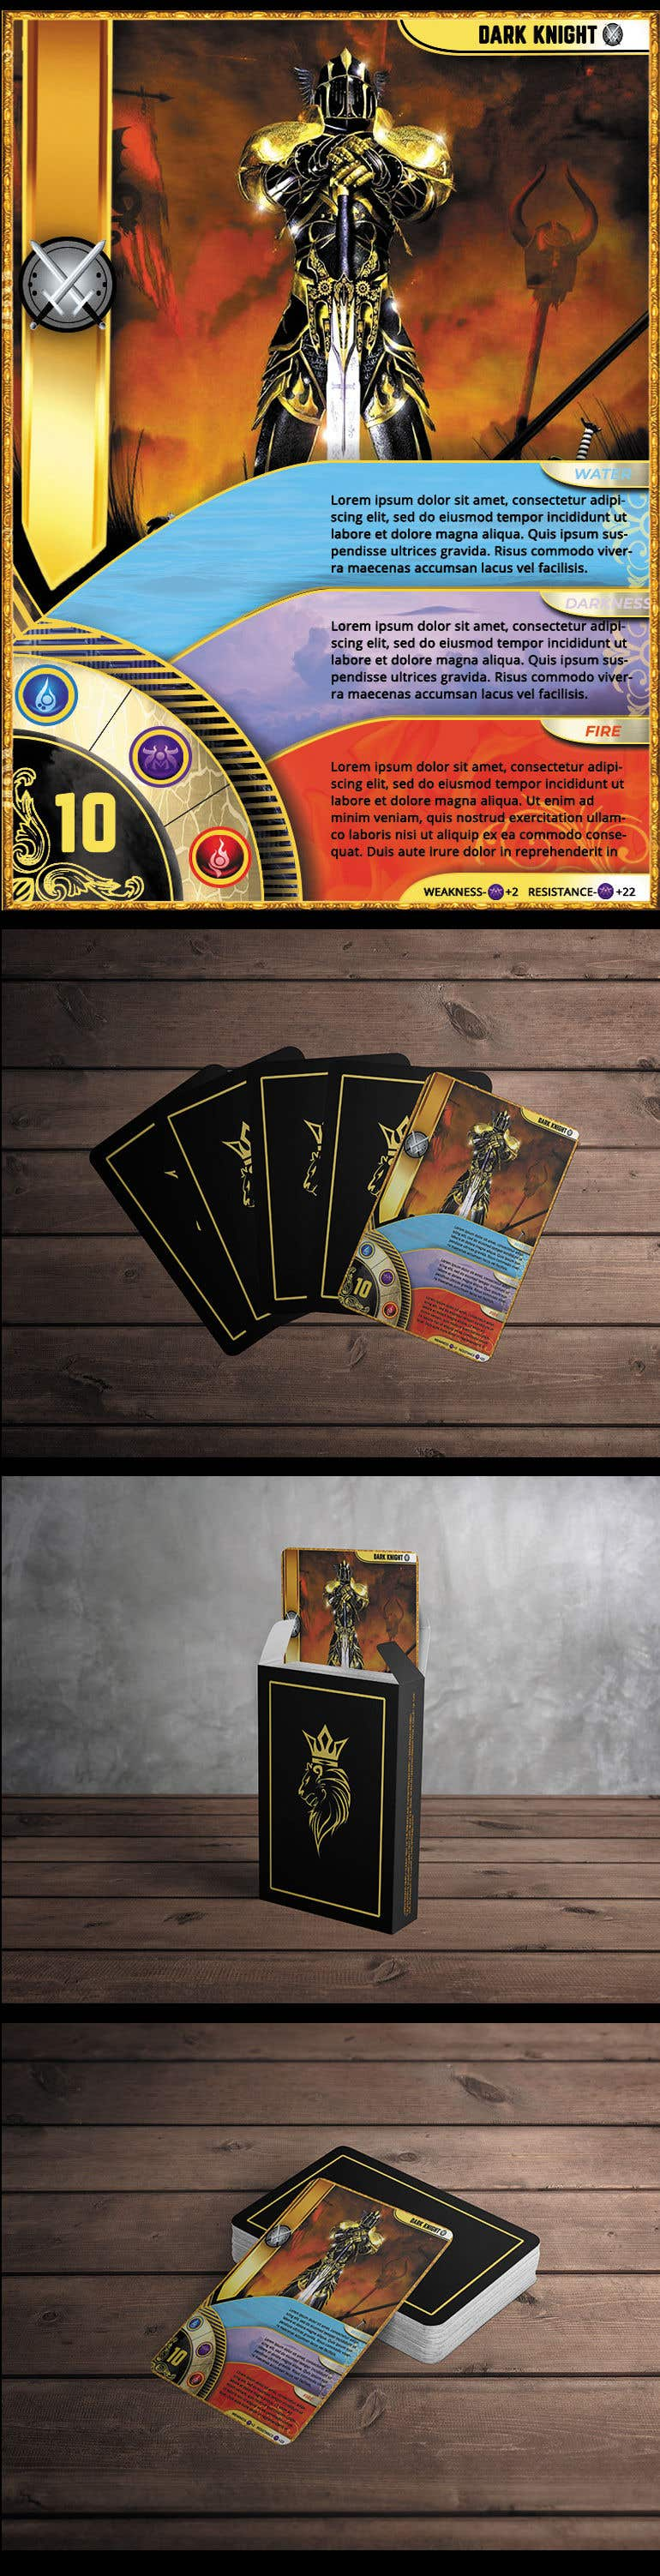 Konkurrenceindlæg #                                        37                                      for                                         Trading Card Game Template Design. Possible Multiple Winners.